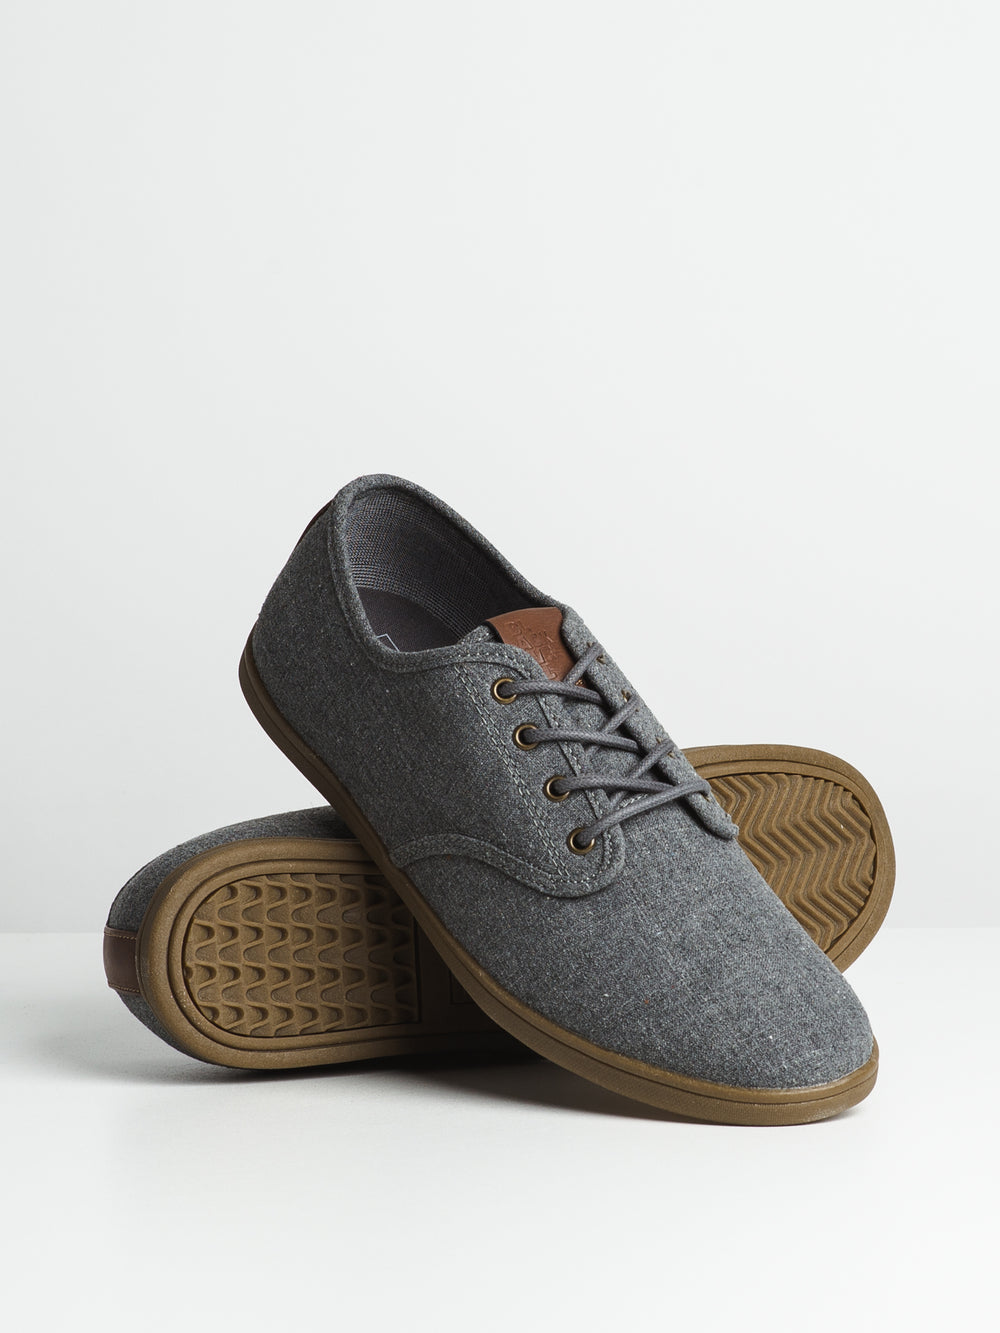 MENS JAKE - GREY/GUM-D1